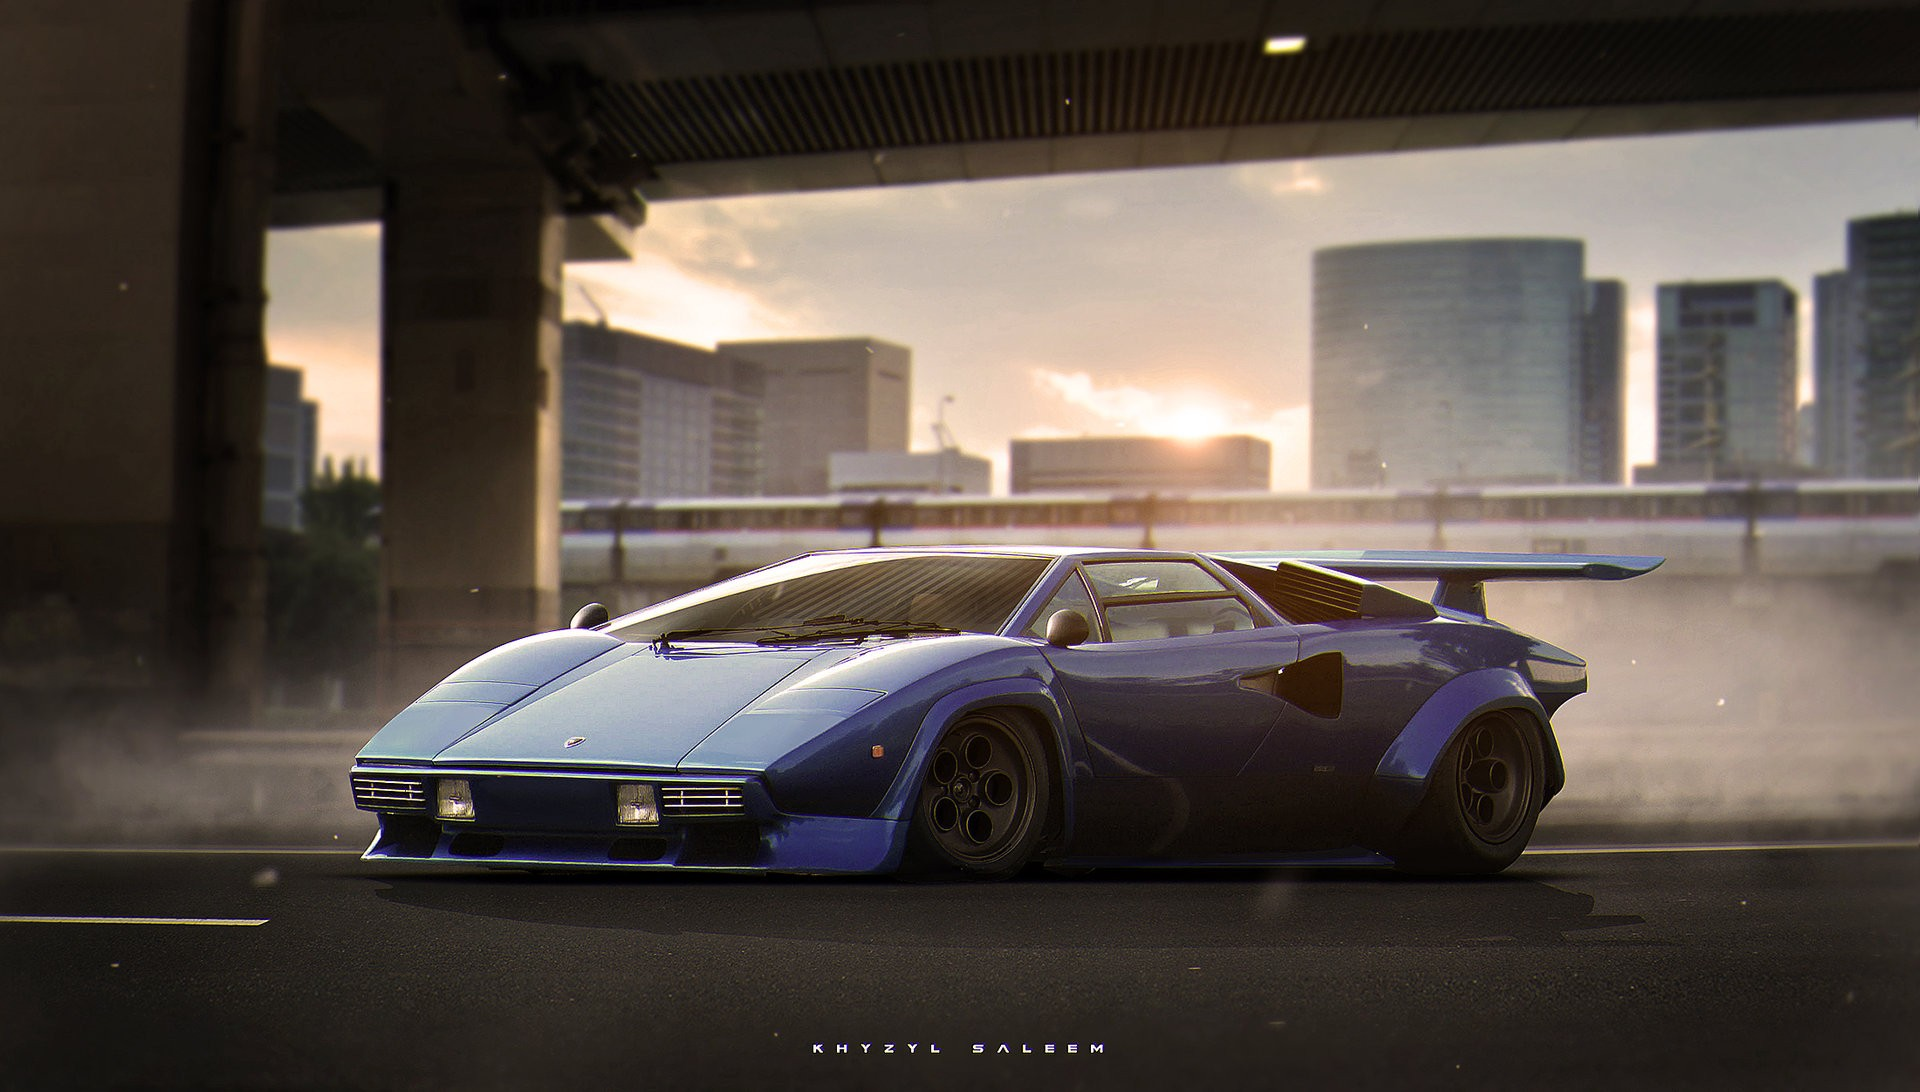 Awesome Fast Car Wallpapers Ferraris Lamborghinis And Mclarens Rendered As